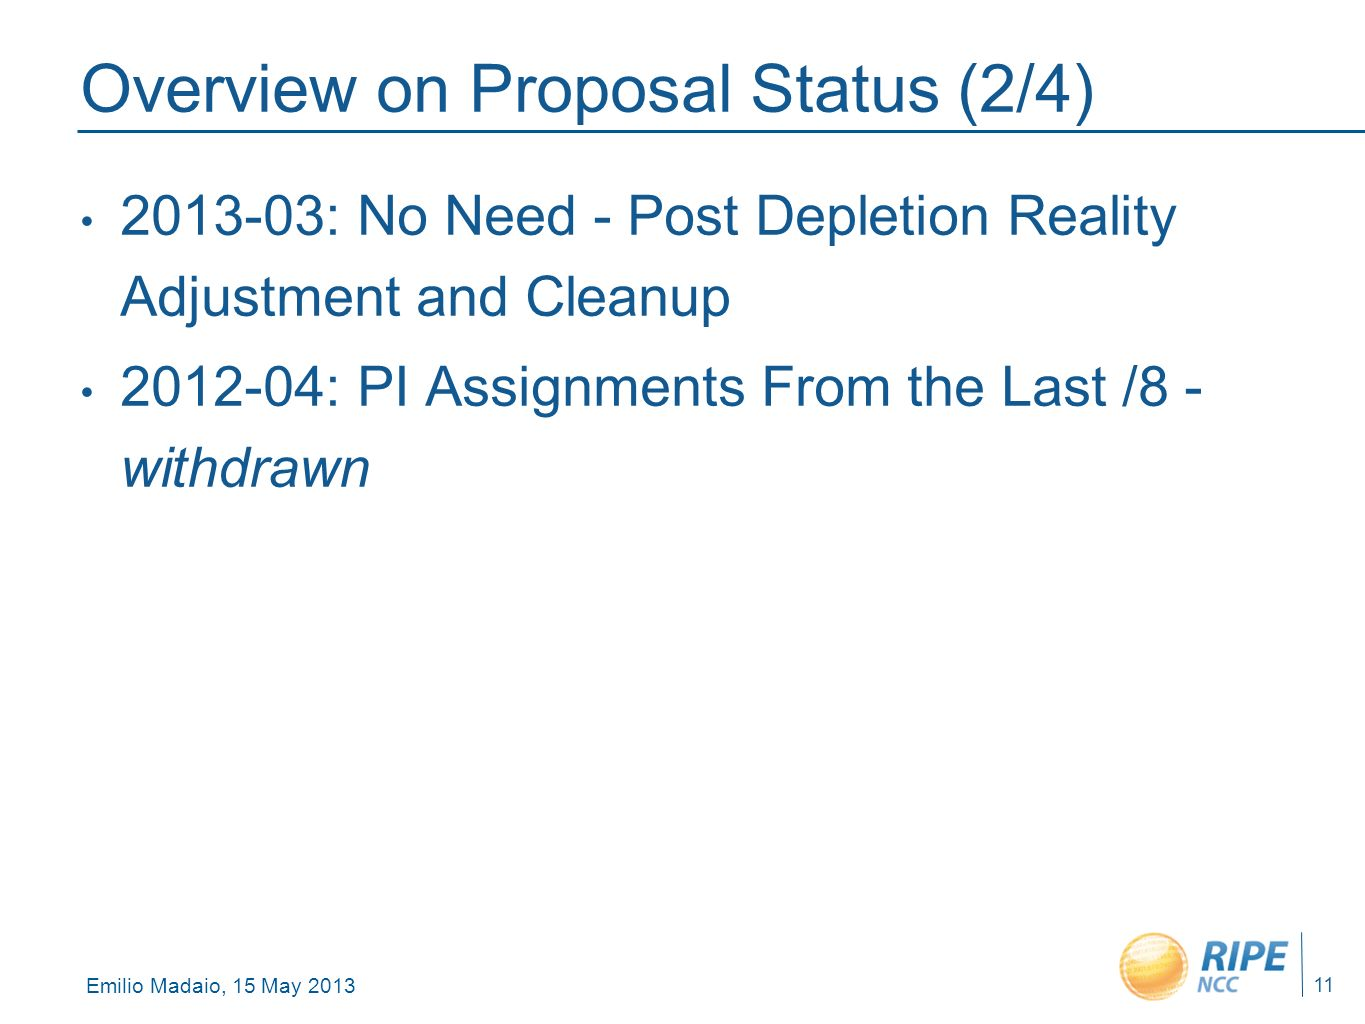 Emilio Madaio, 15 May 2013 11 Overview on Proposal Status (2/4) 2013-03: No Need - Post Depletion Reality Adjustment and Cleanup 2012-04: PI Assignmen